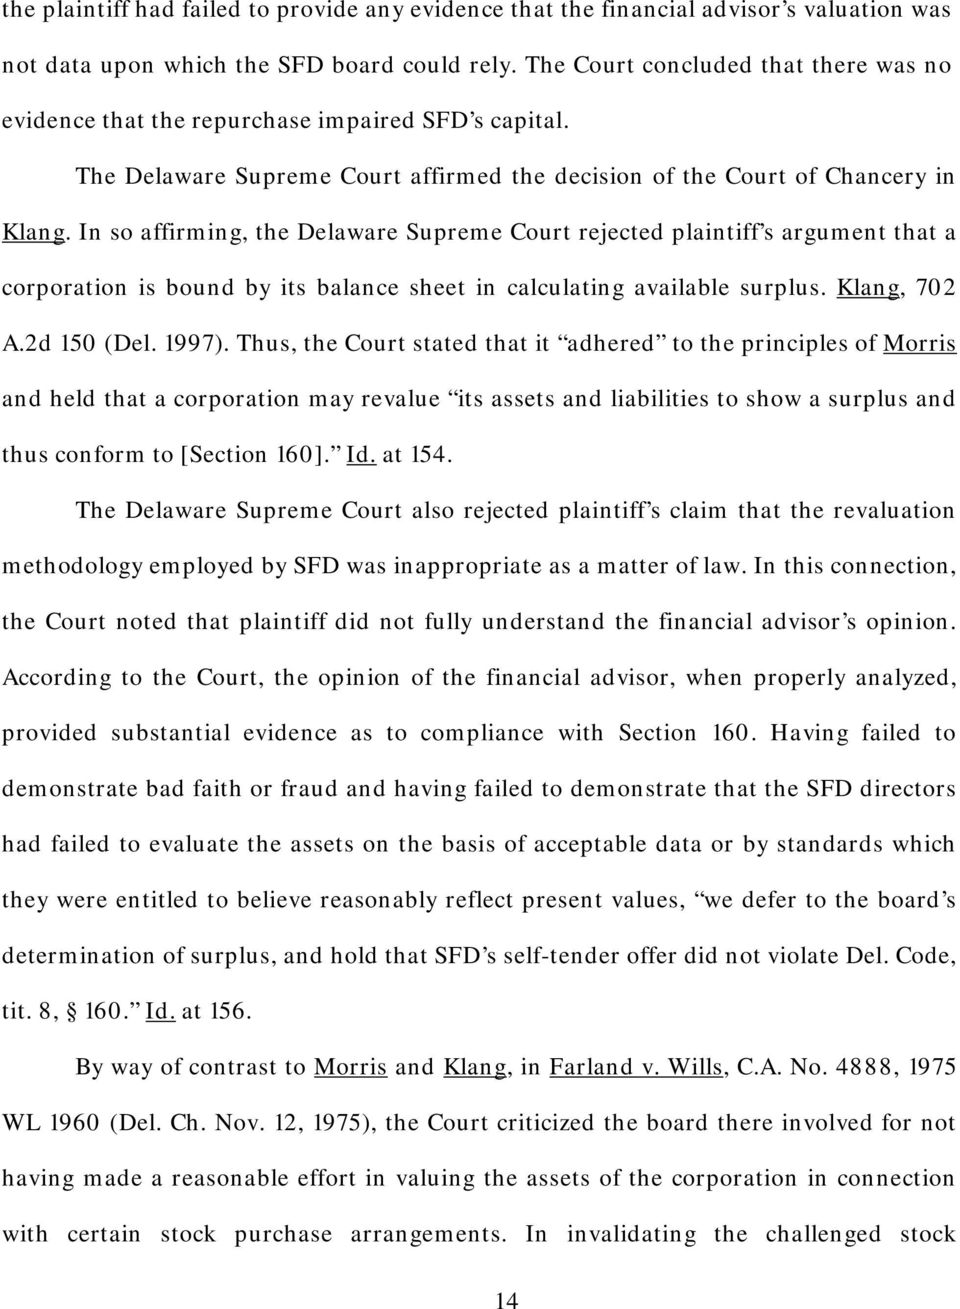 In so affirming, the Delaware Supreme Court rejected plaintiff s argument that a corporation is bound by its balance sheet in calculating available surplus. Klang, 702 A.2d 150 (Del. 1997).